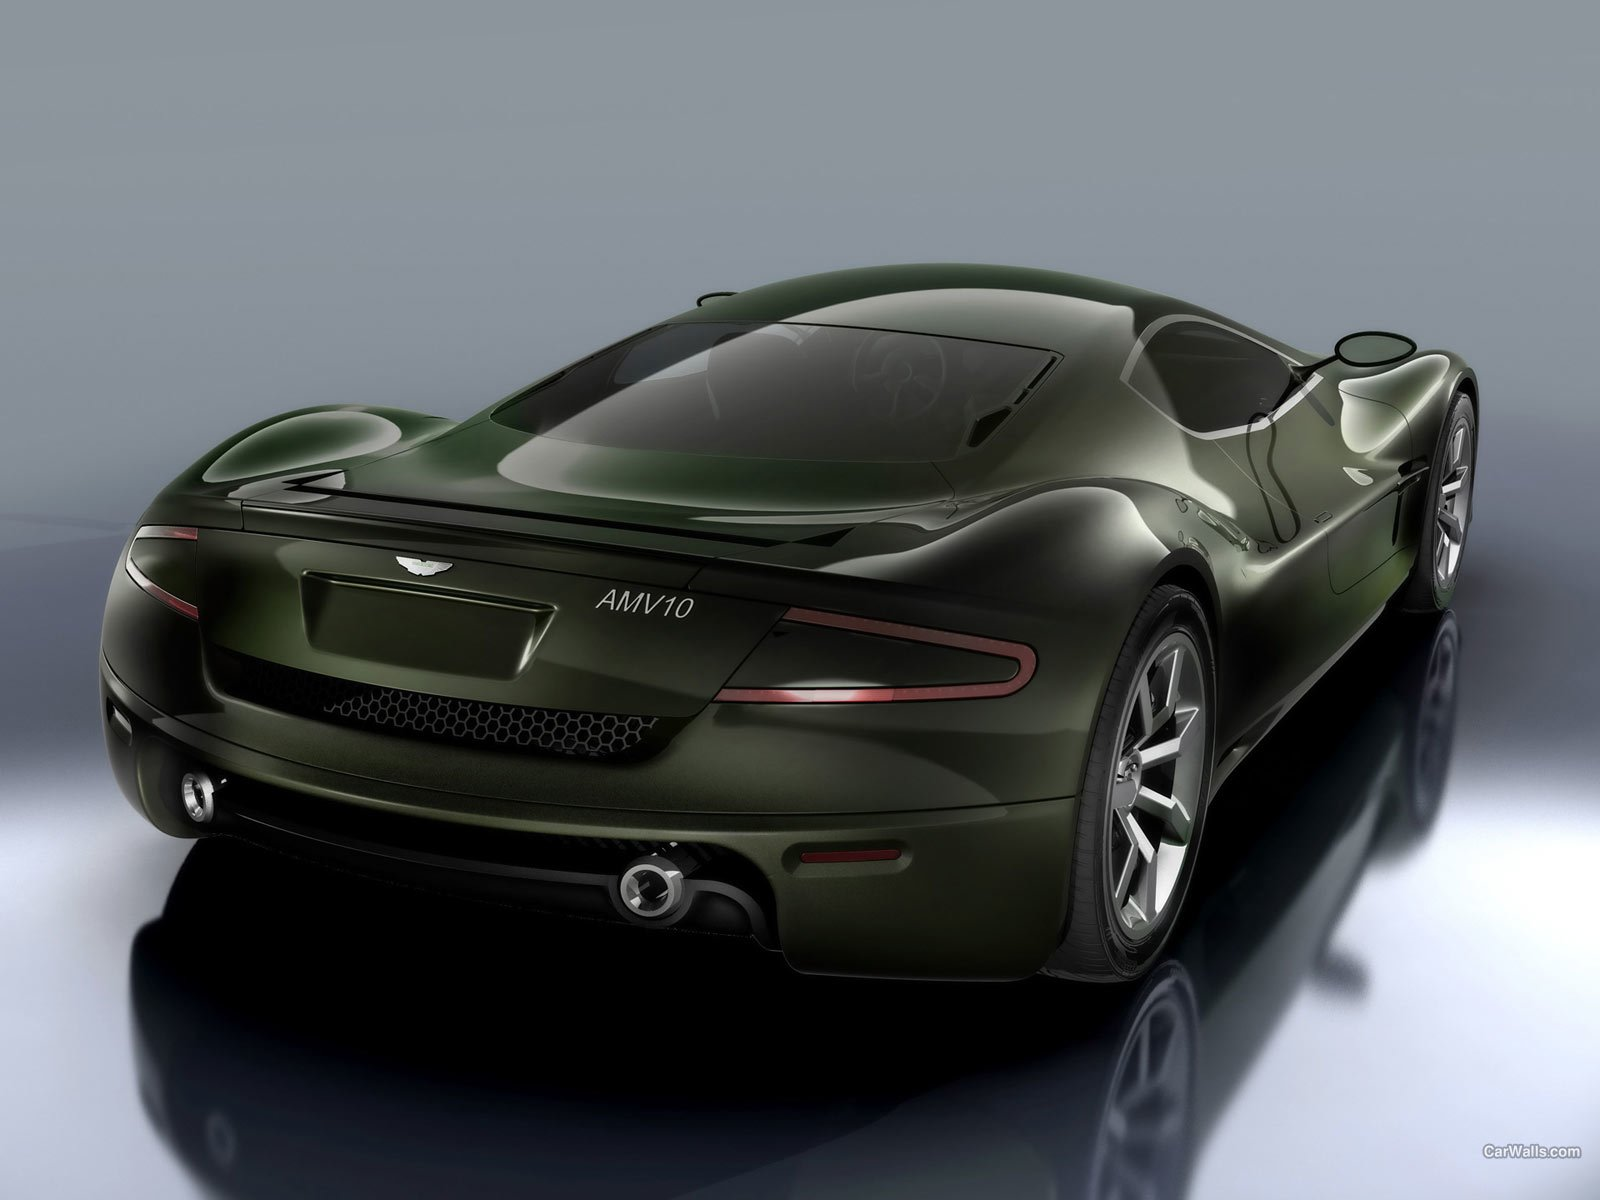 Latest Aston Martin Car Wallpapers Aston Martin Amv10 Concept Free Download